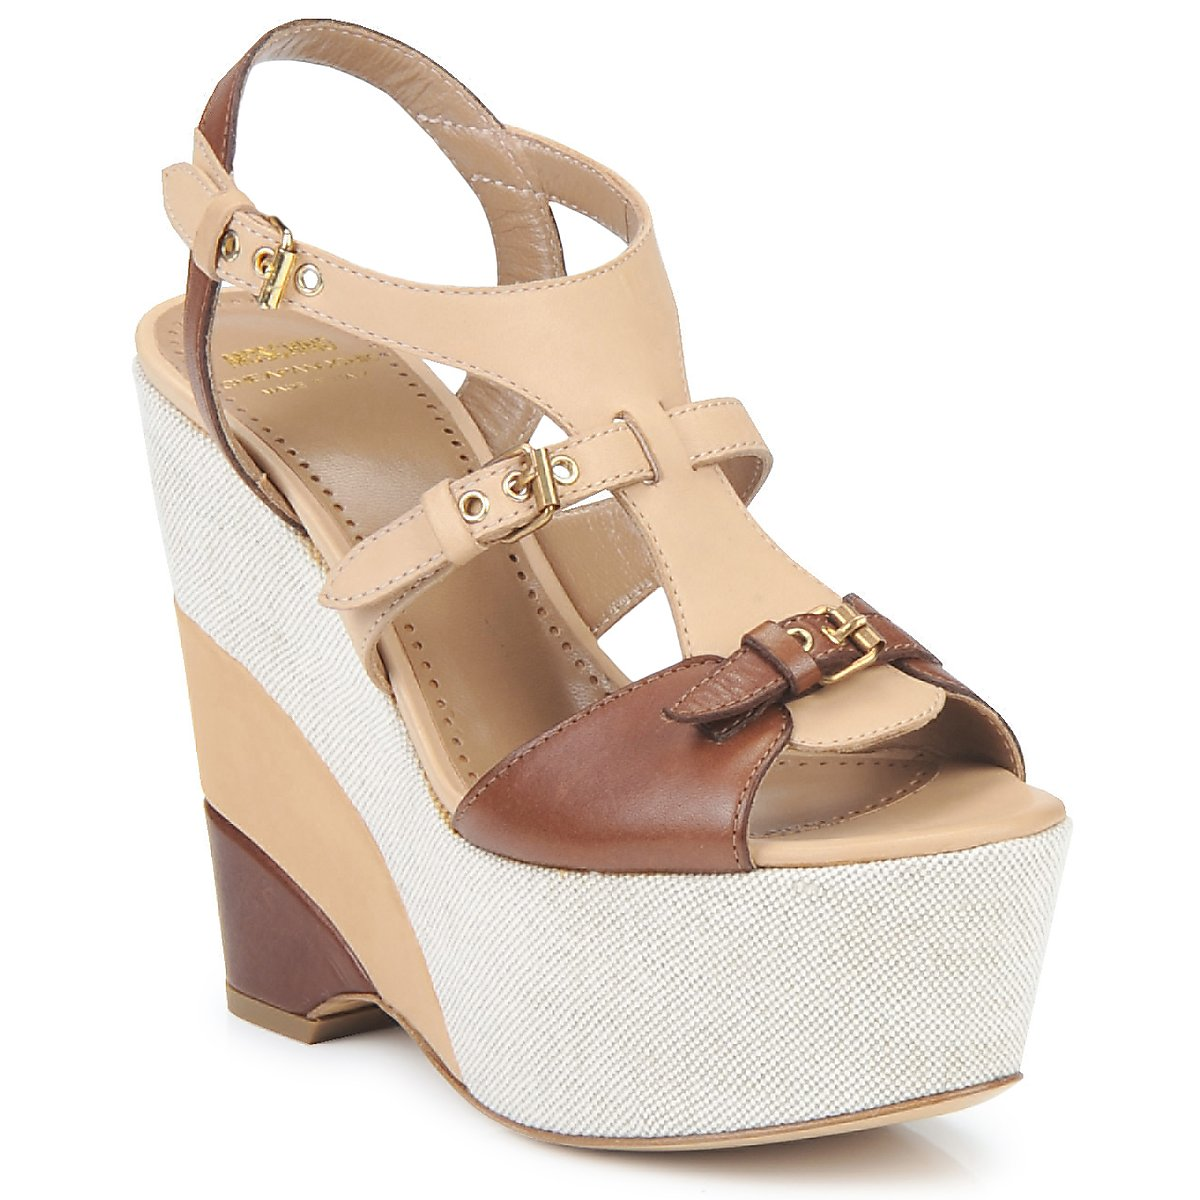 Sandals Moschino Cheap & CHIC STERLIZIA BEIGE-BROWN